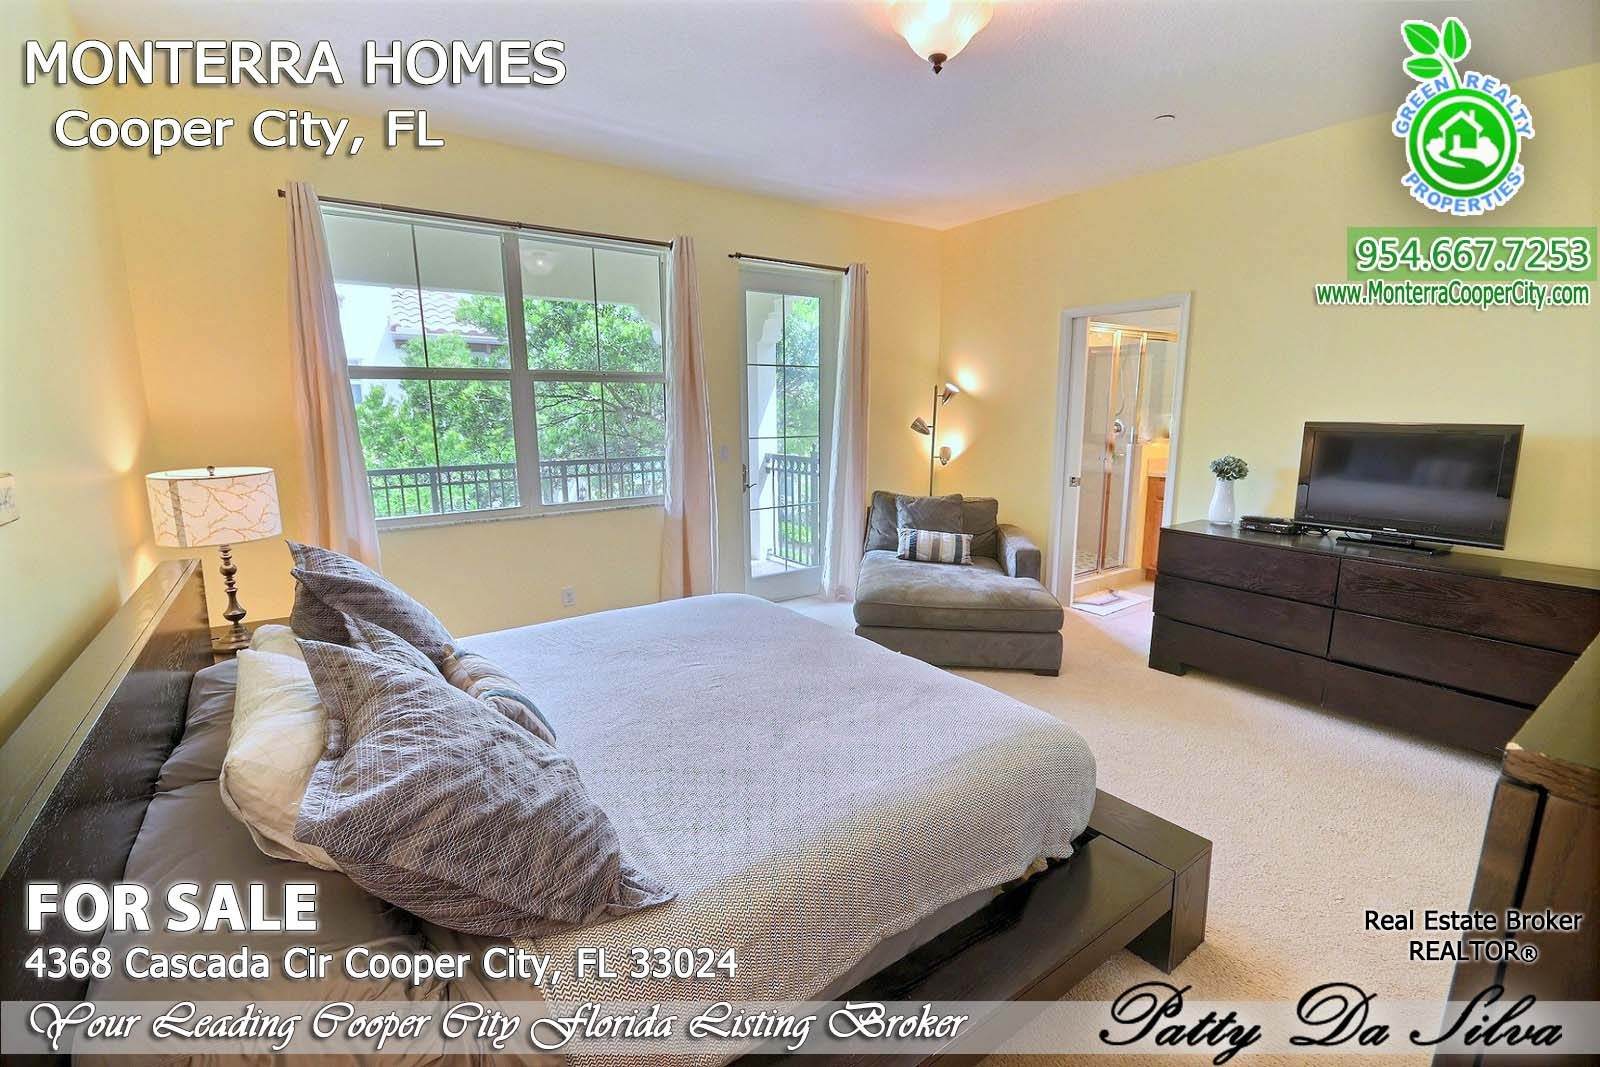 4368 Cascada Cir, Cooper City FL (20)